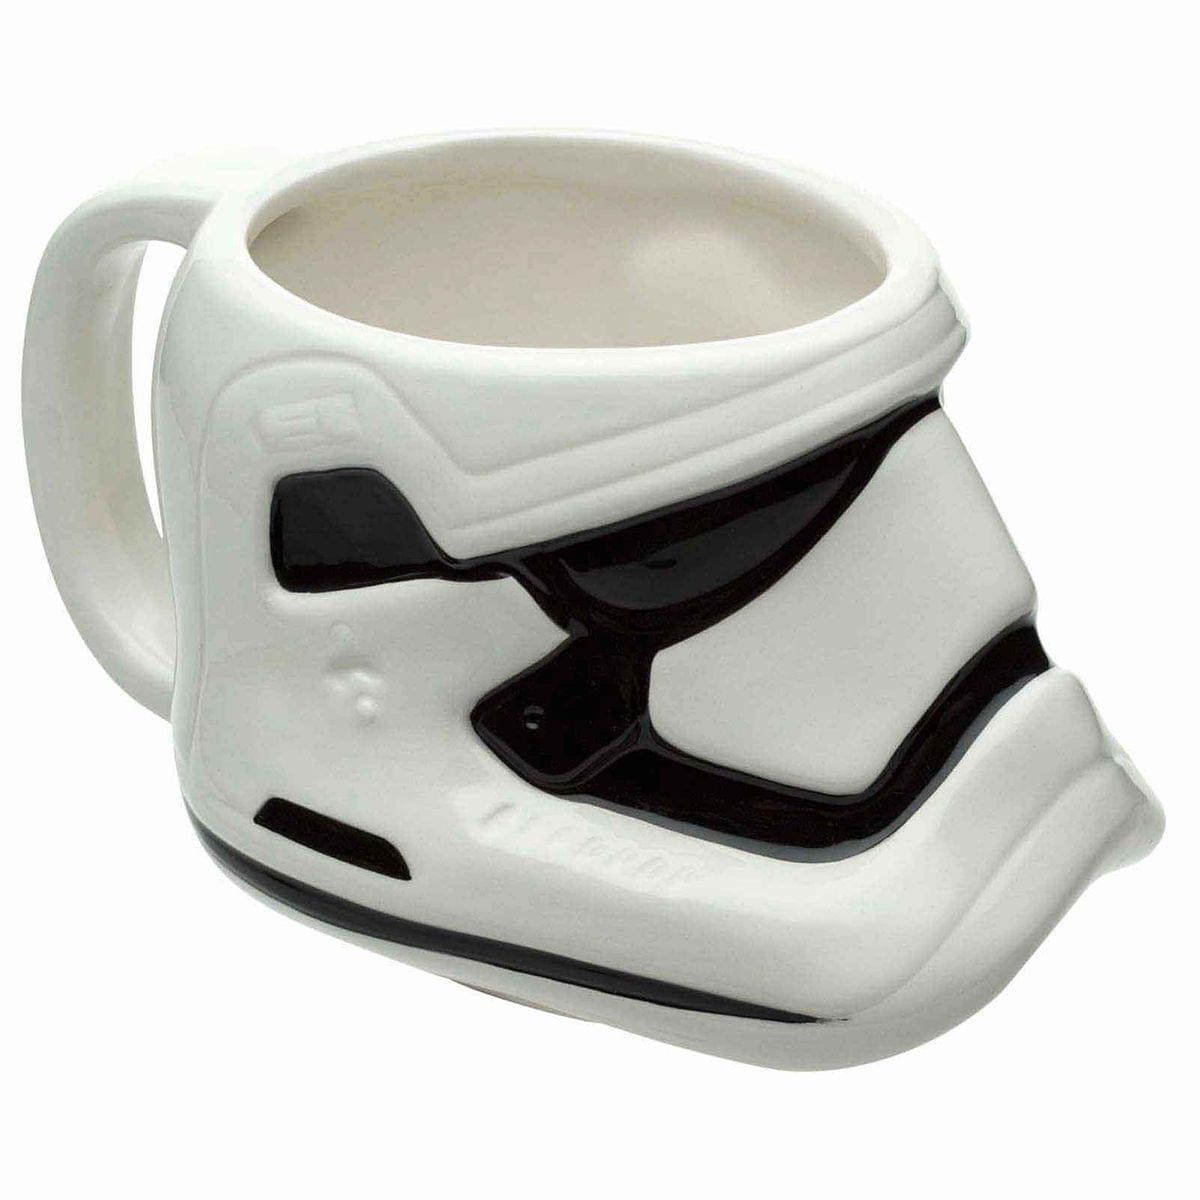 Star Wars The Force Awakens Stormtrooper Sculpted Ceramic